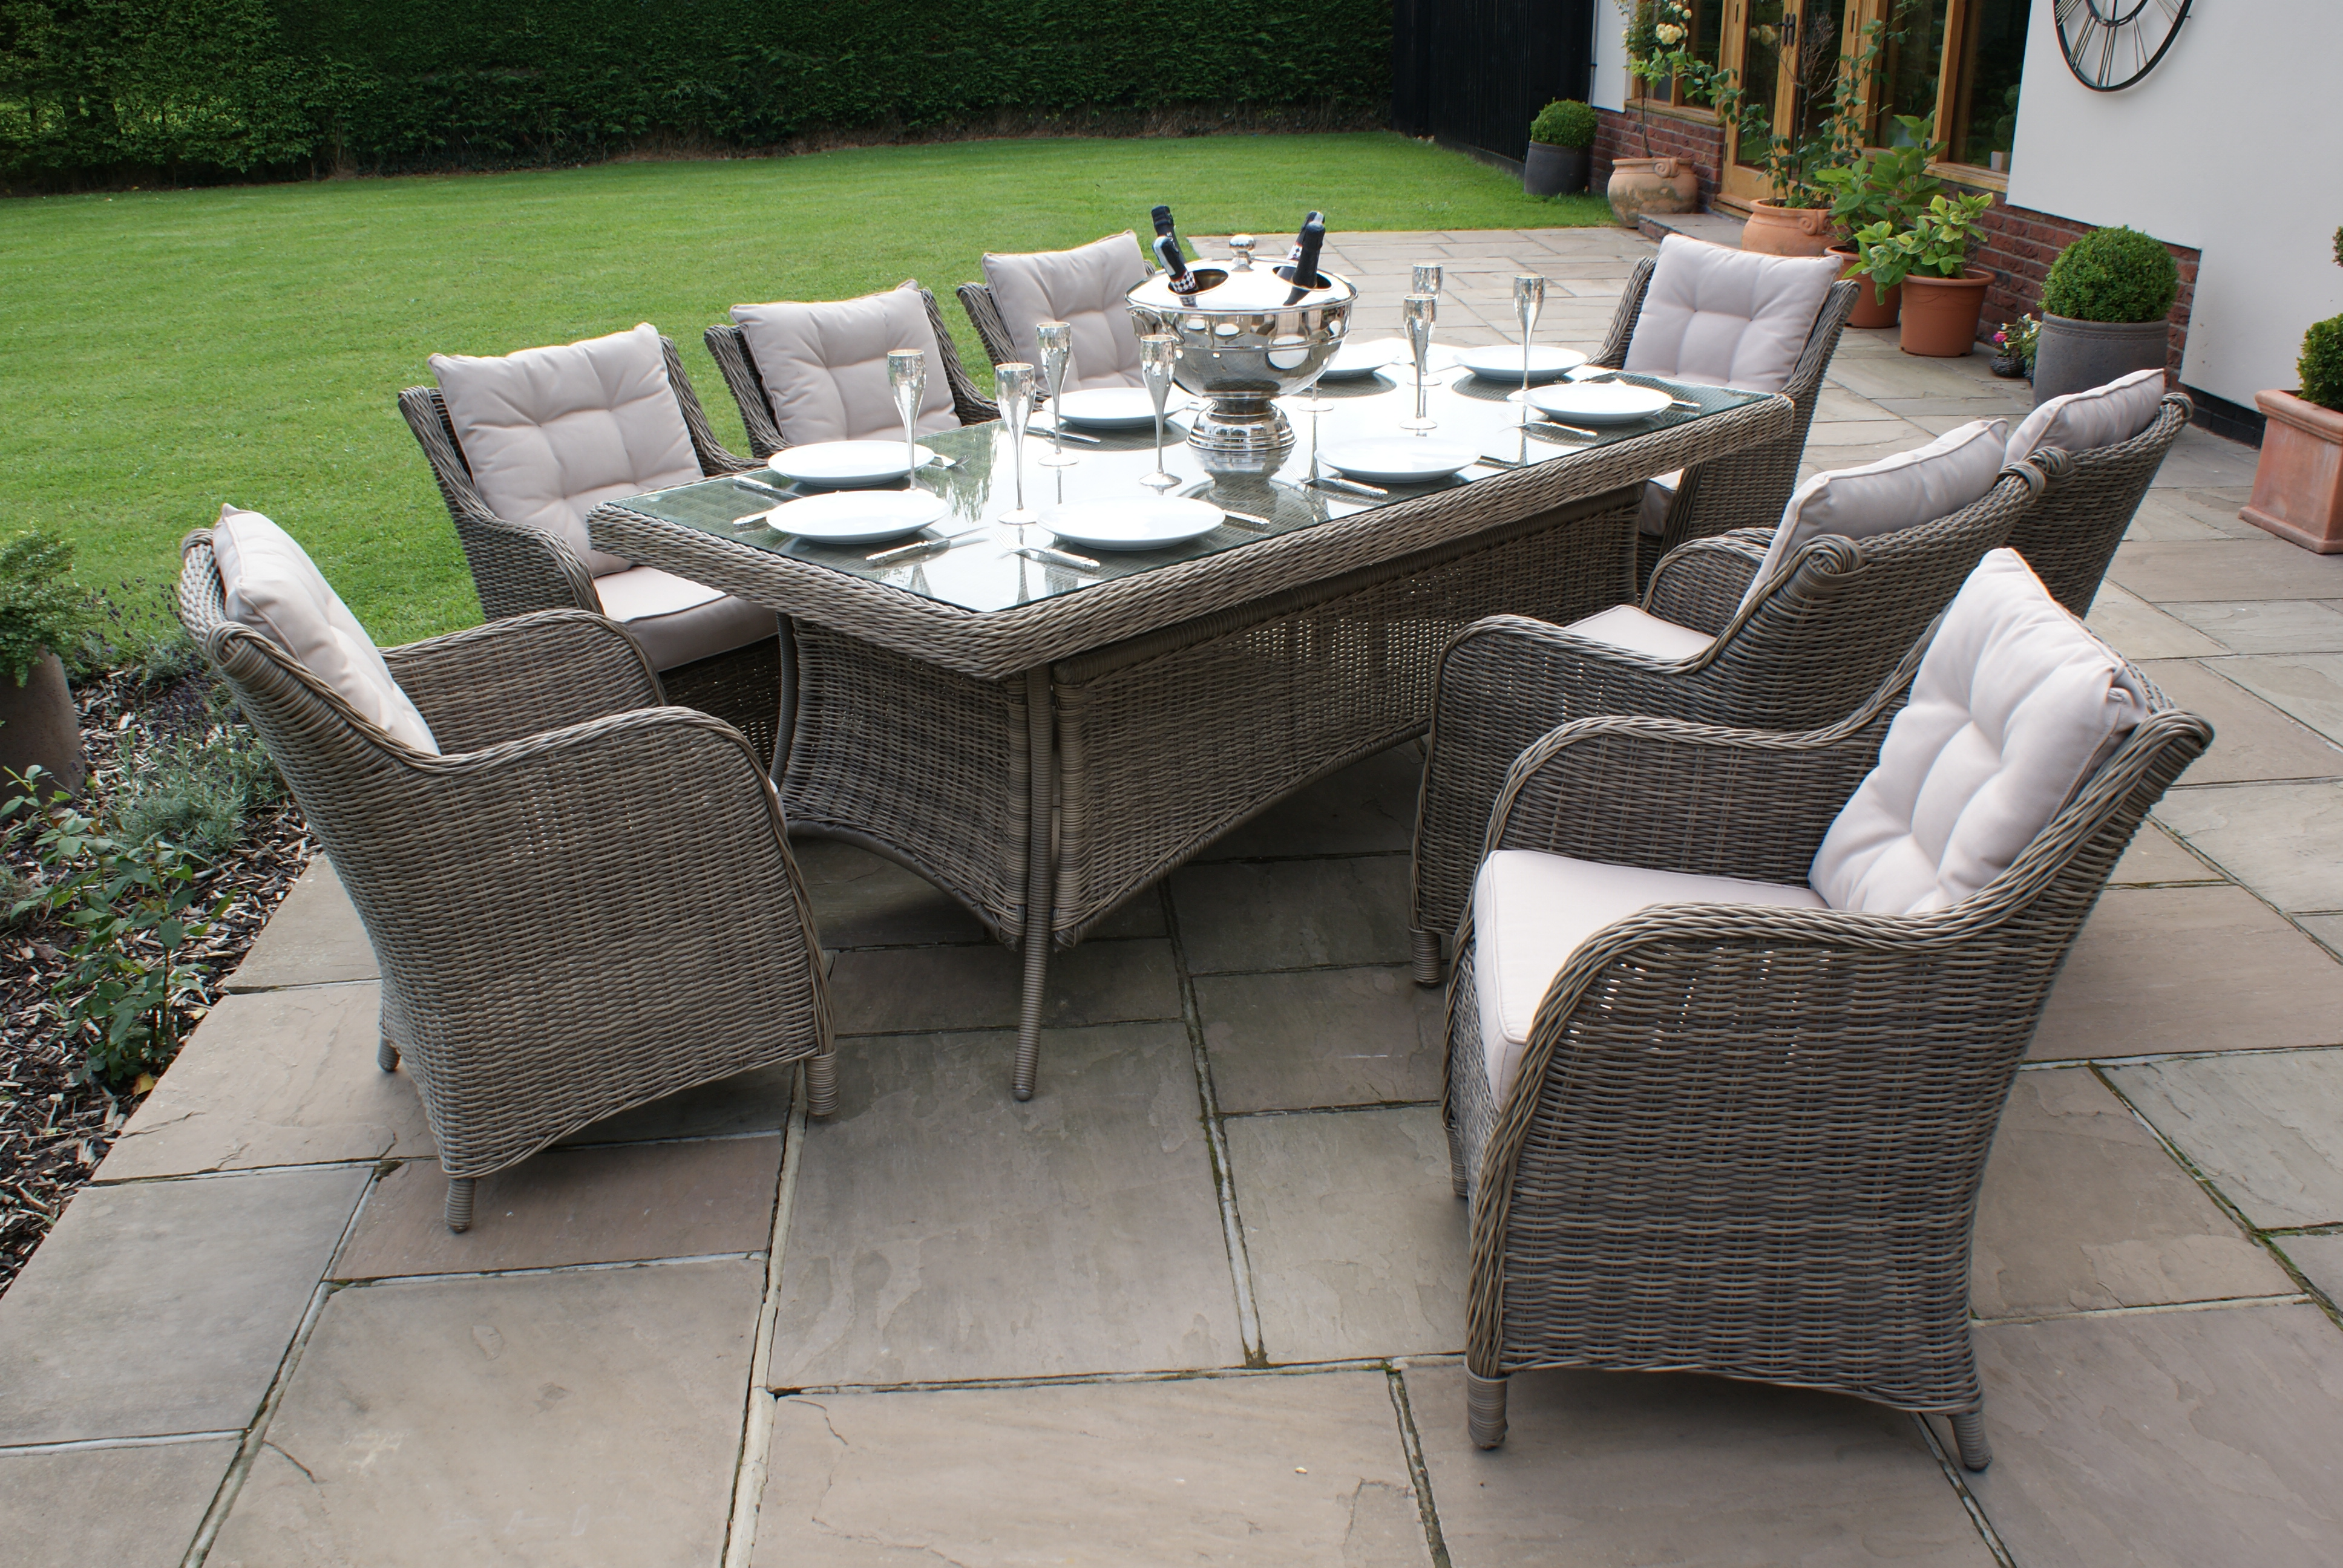 Garden Table And Chairs Winchester 8 Seat Rectangle Dining Set With Square Chairs